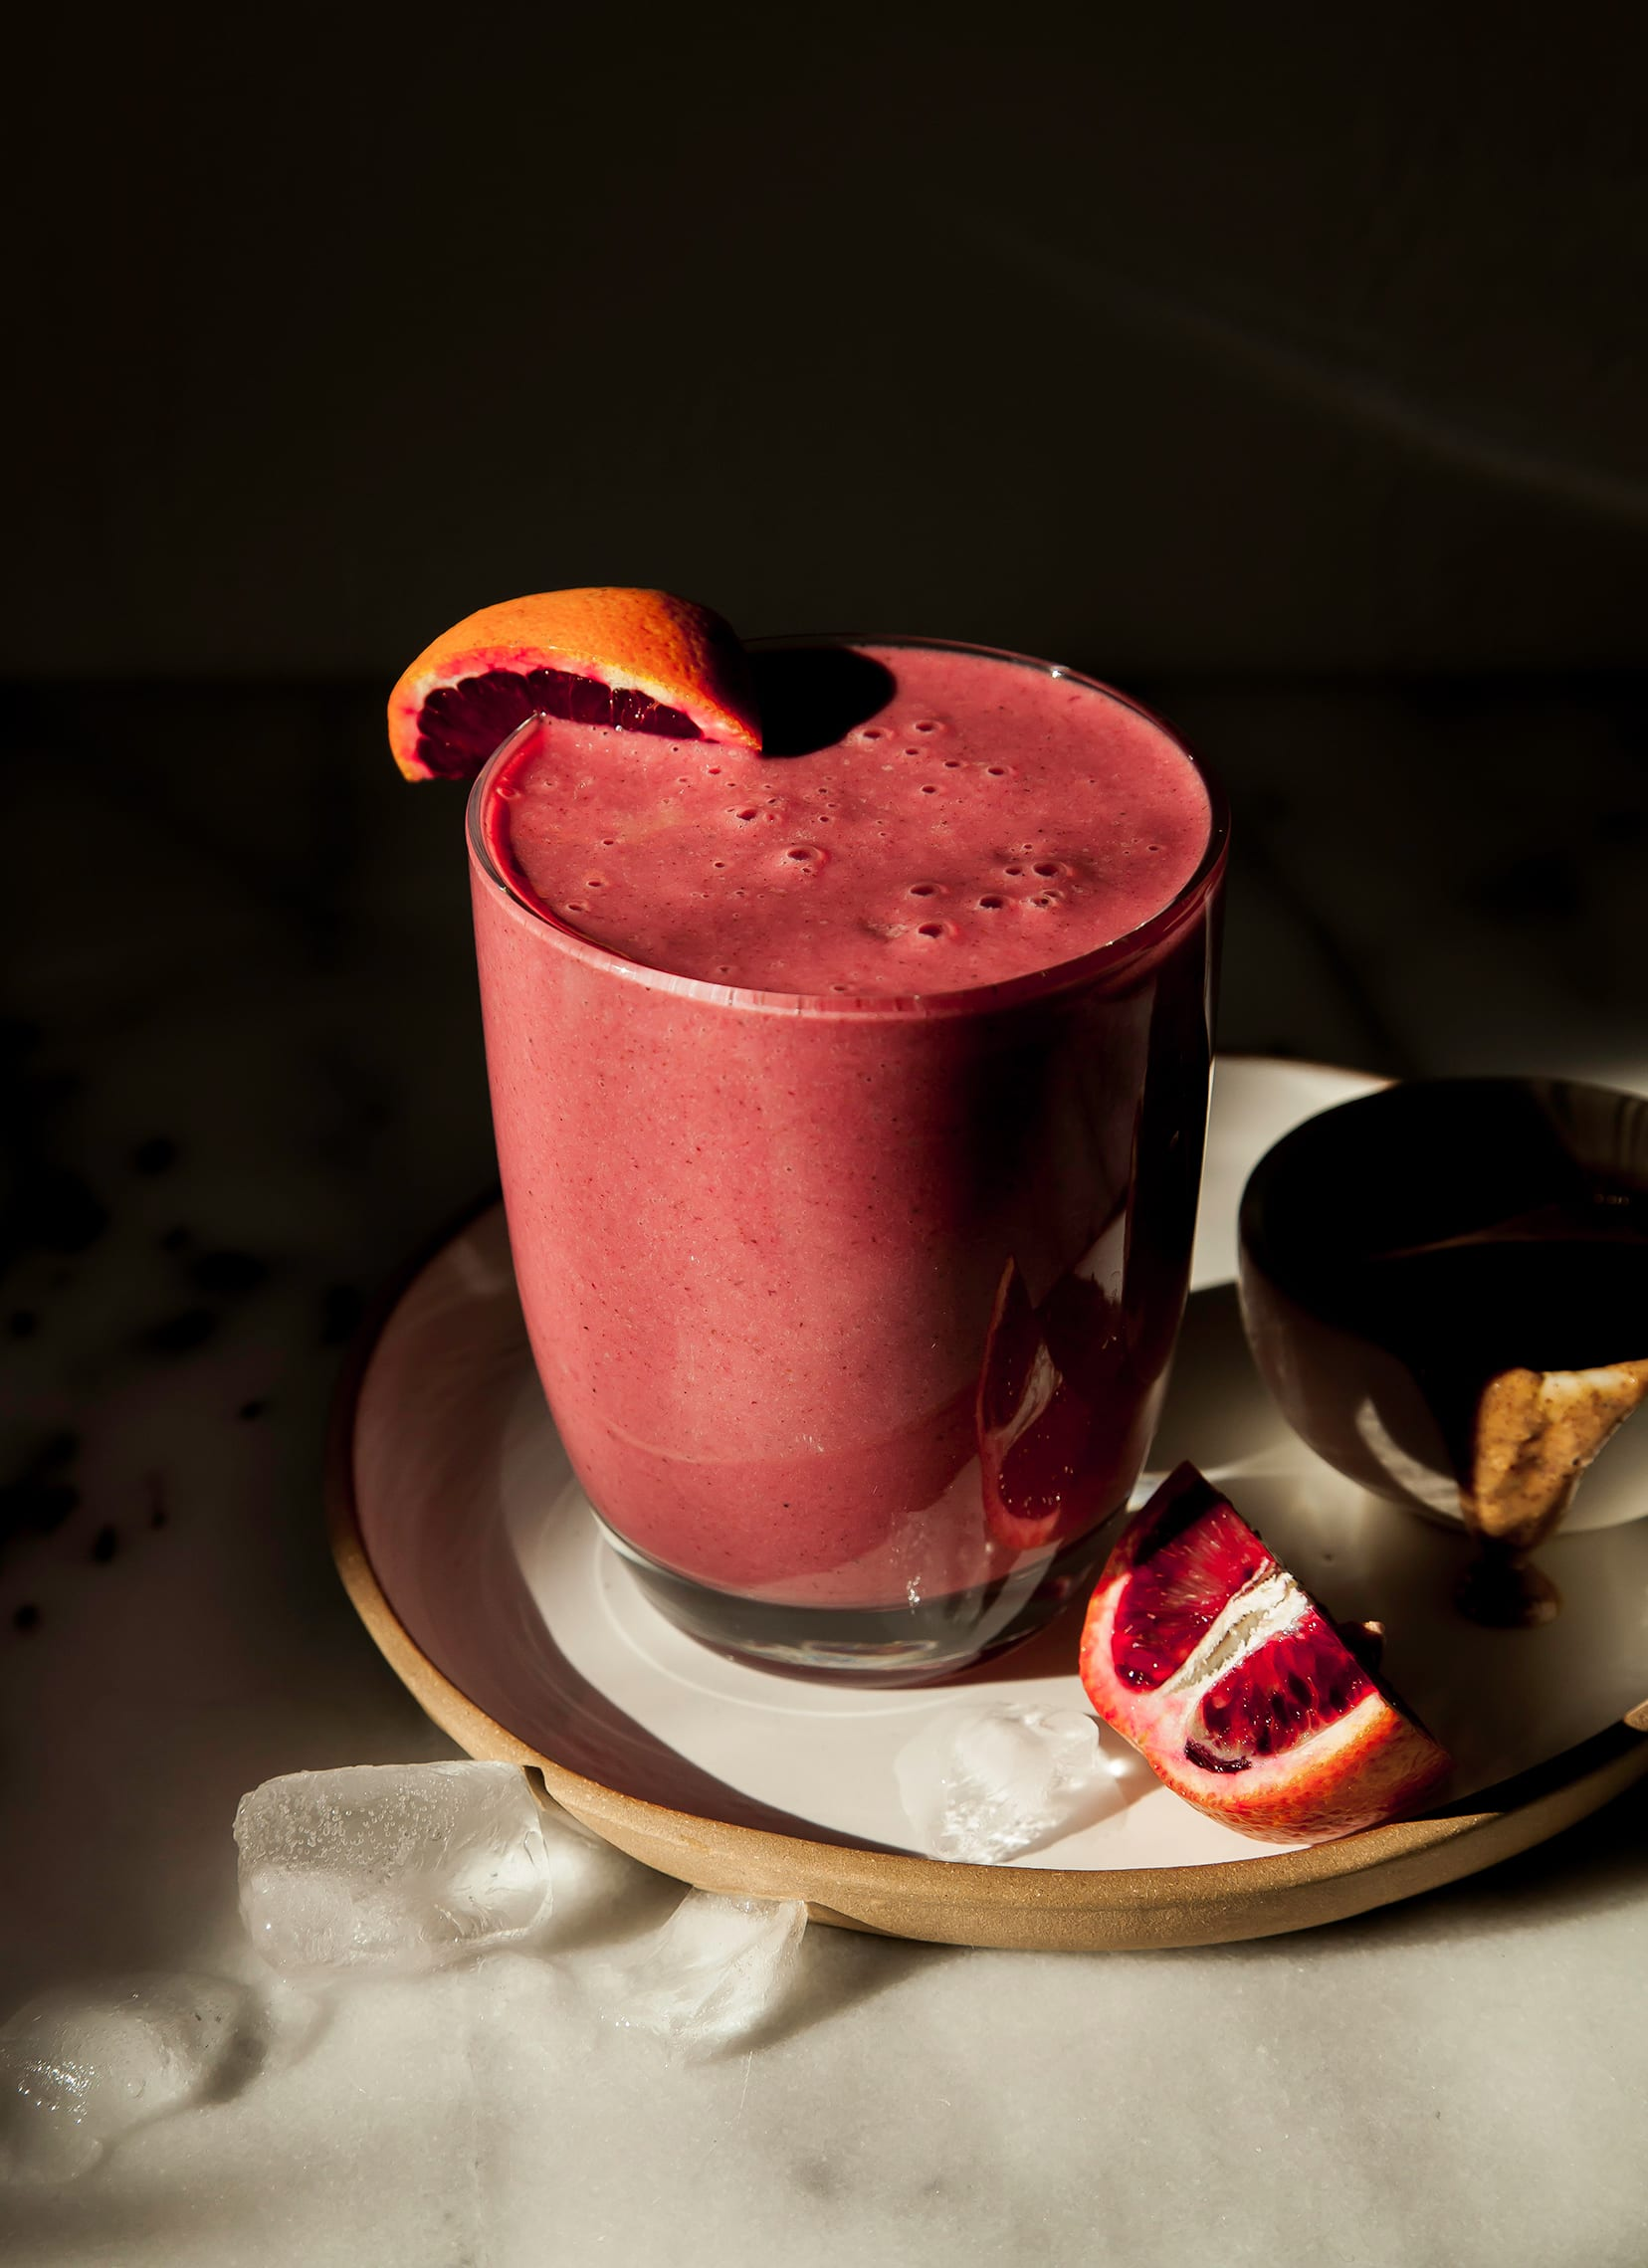 A 3/4 angle shot of a deep burgundy smoothie in a clear glass in harsh sunlight. A sliced blood orange is perched on a plate nearby. Included in a roundup of healthy vegan smoothies.